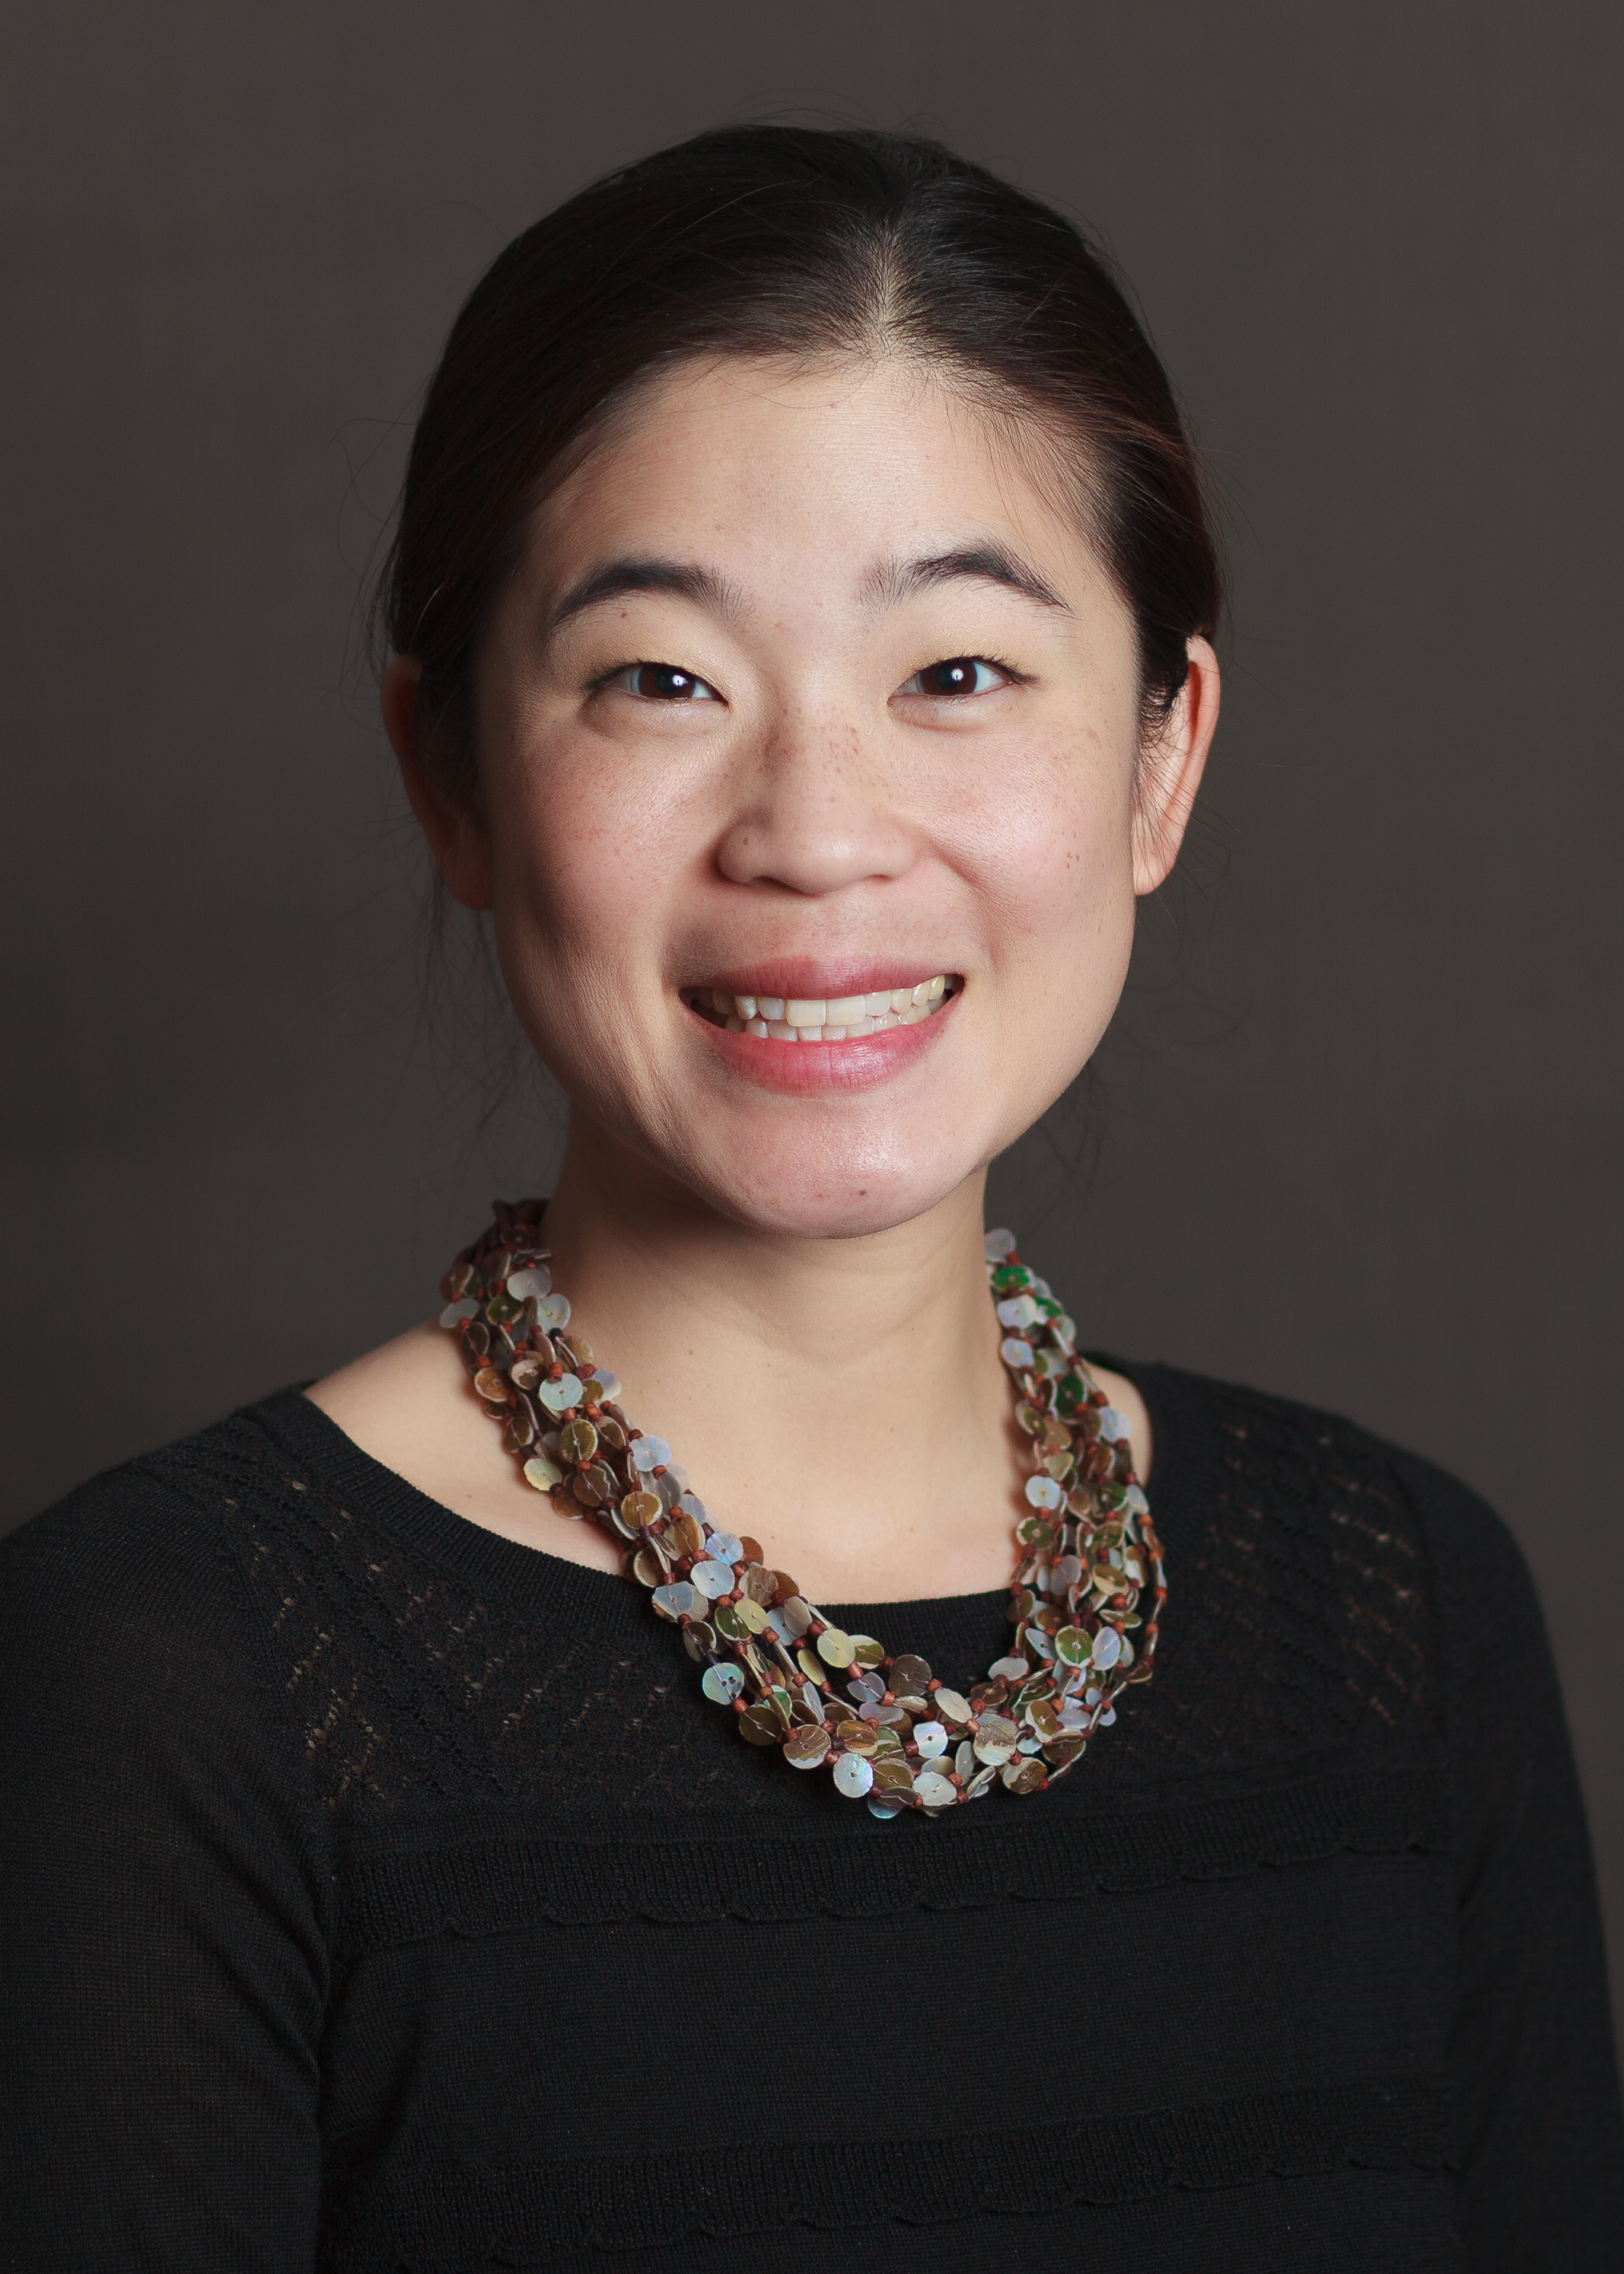 Alice Kang to Discuss Muslim Women's Activism in Final Women's & Gender Studies Fall Colloquium Event